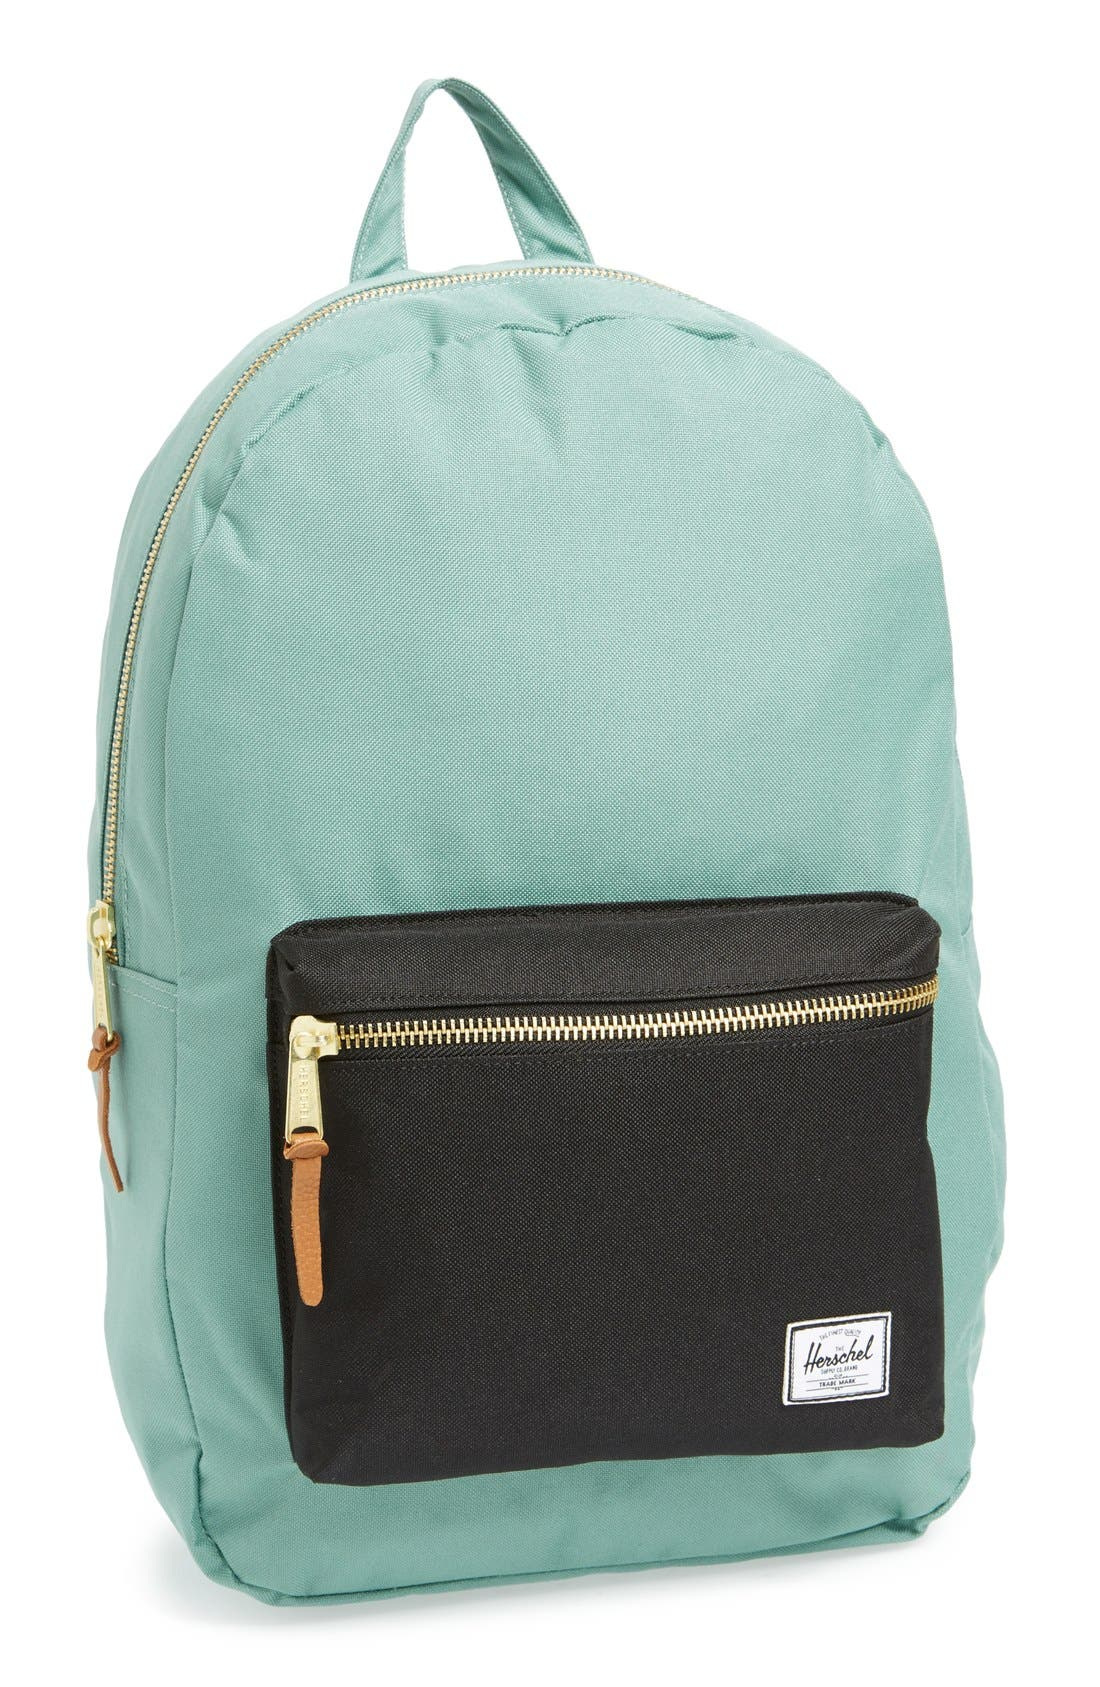 HERSCHEL SUPPLY CO. 'Settlement' Backpack, Main, color, 340